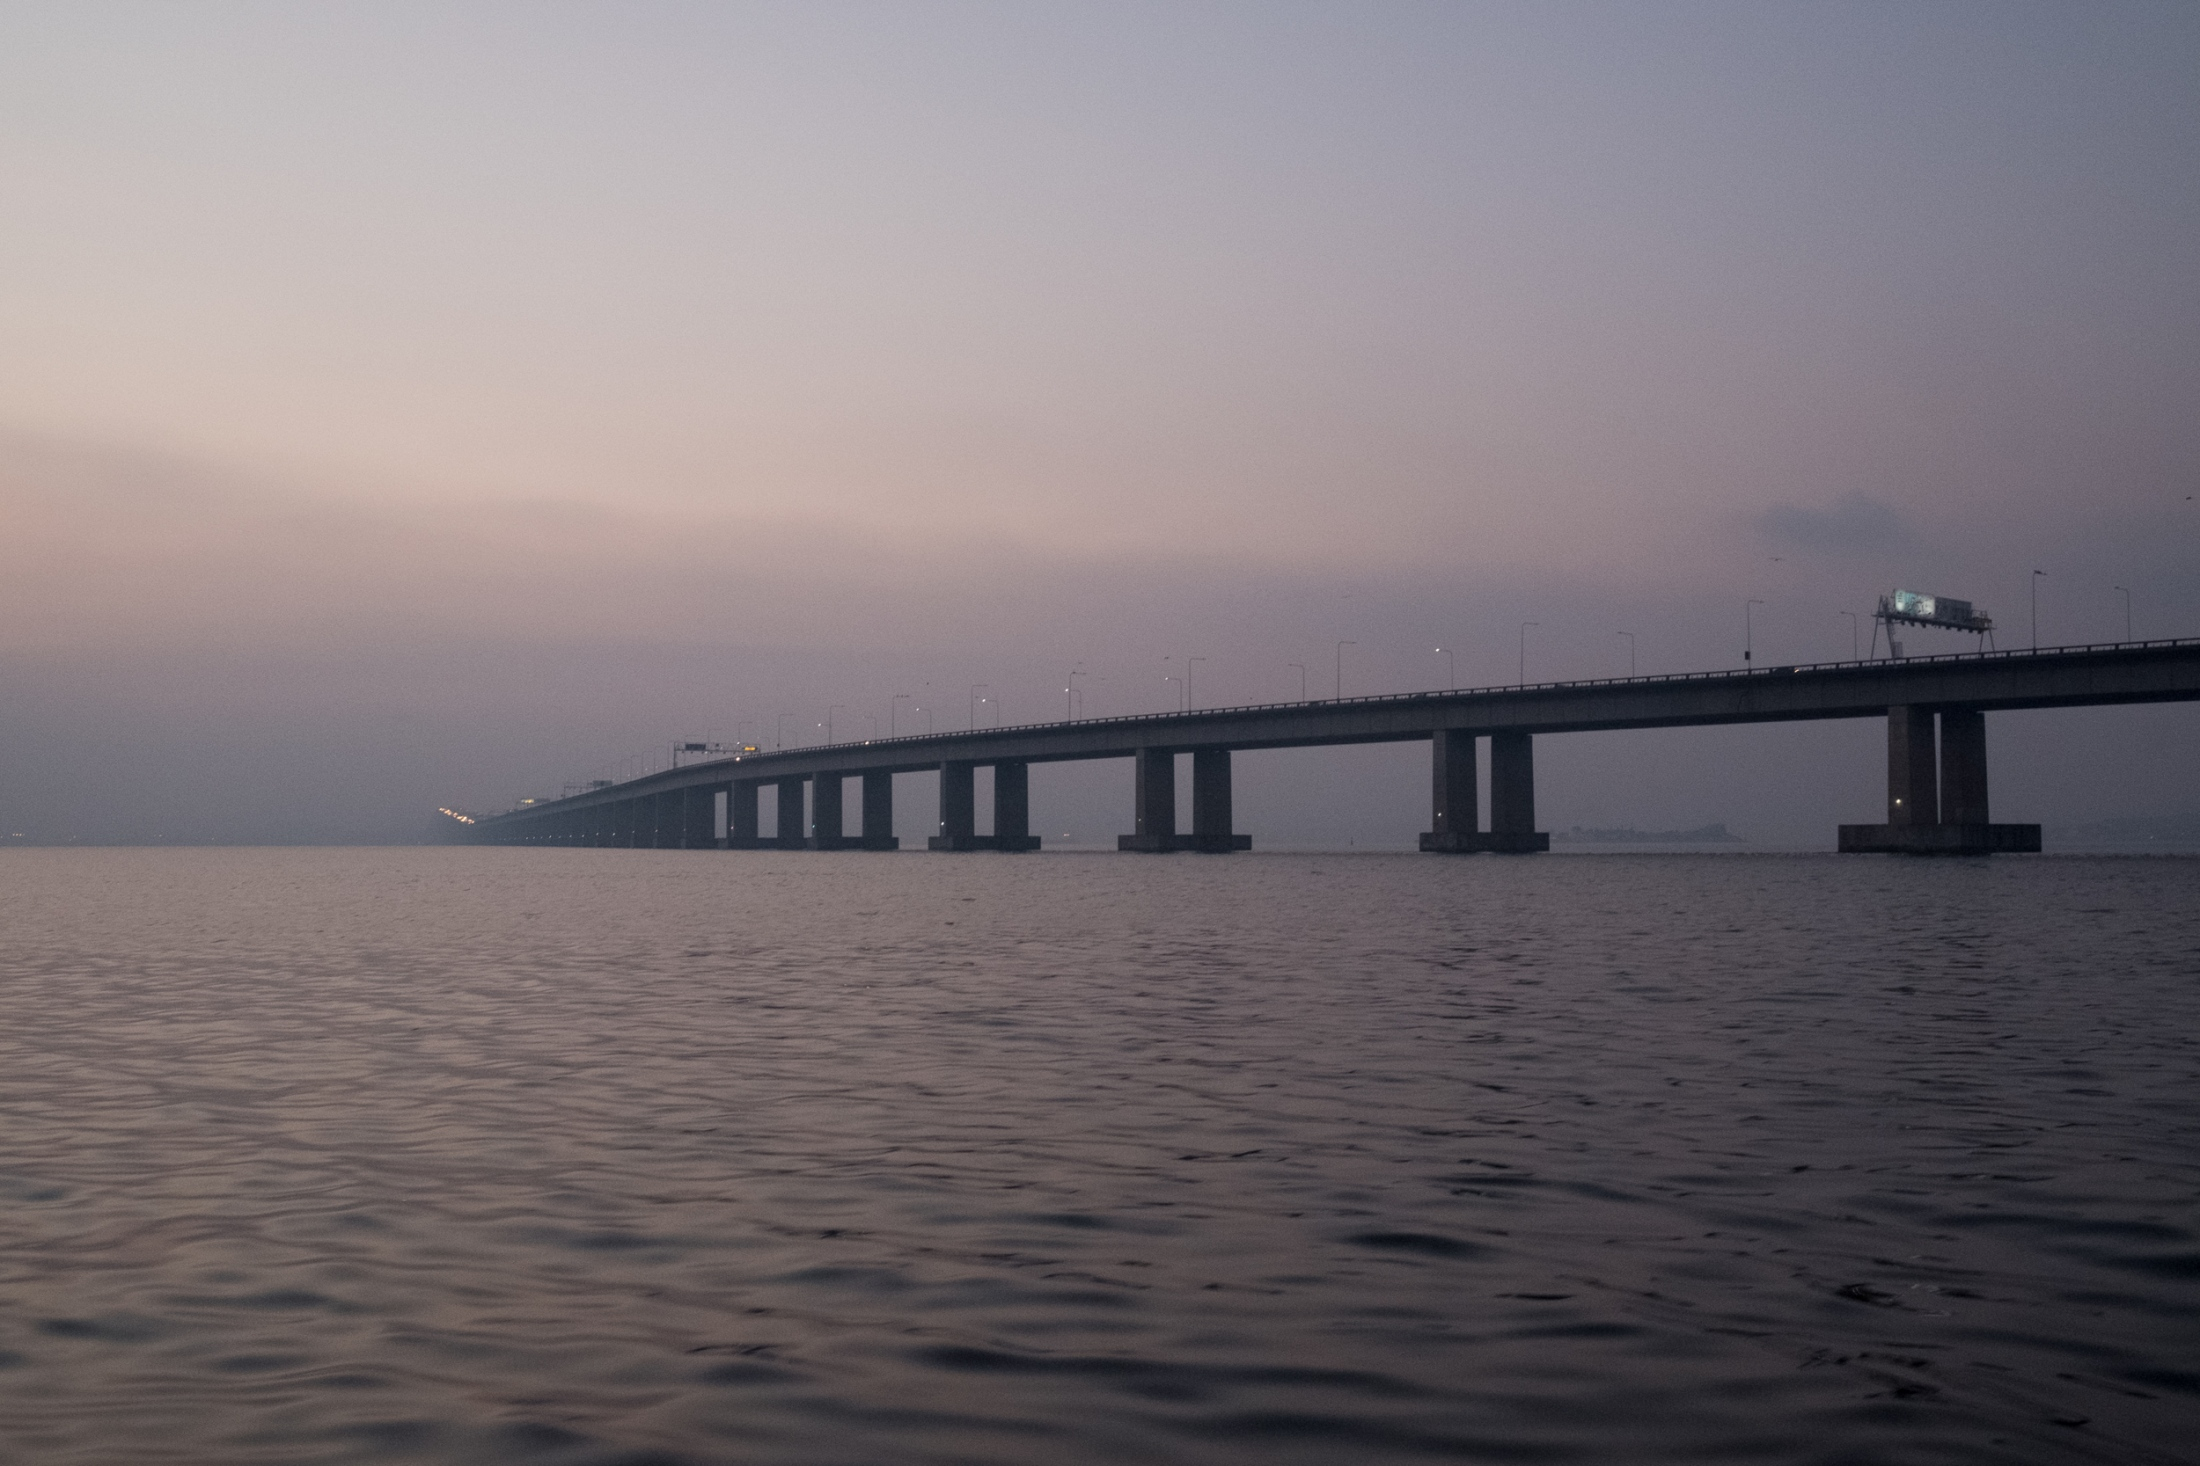 The bridge to Niteroí, on the opposite side of the bay from the city of Rio.